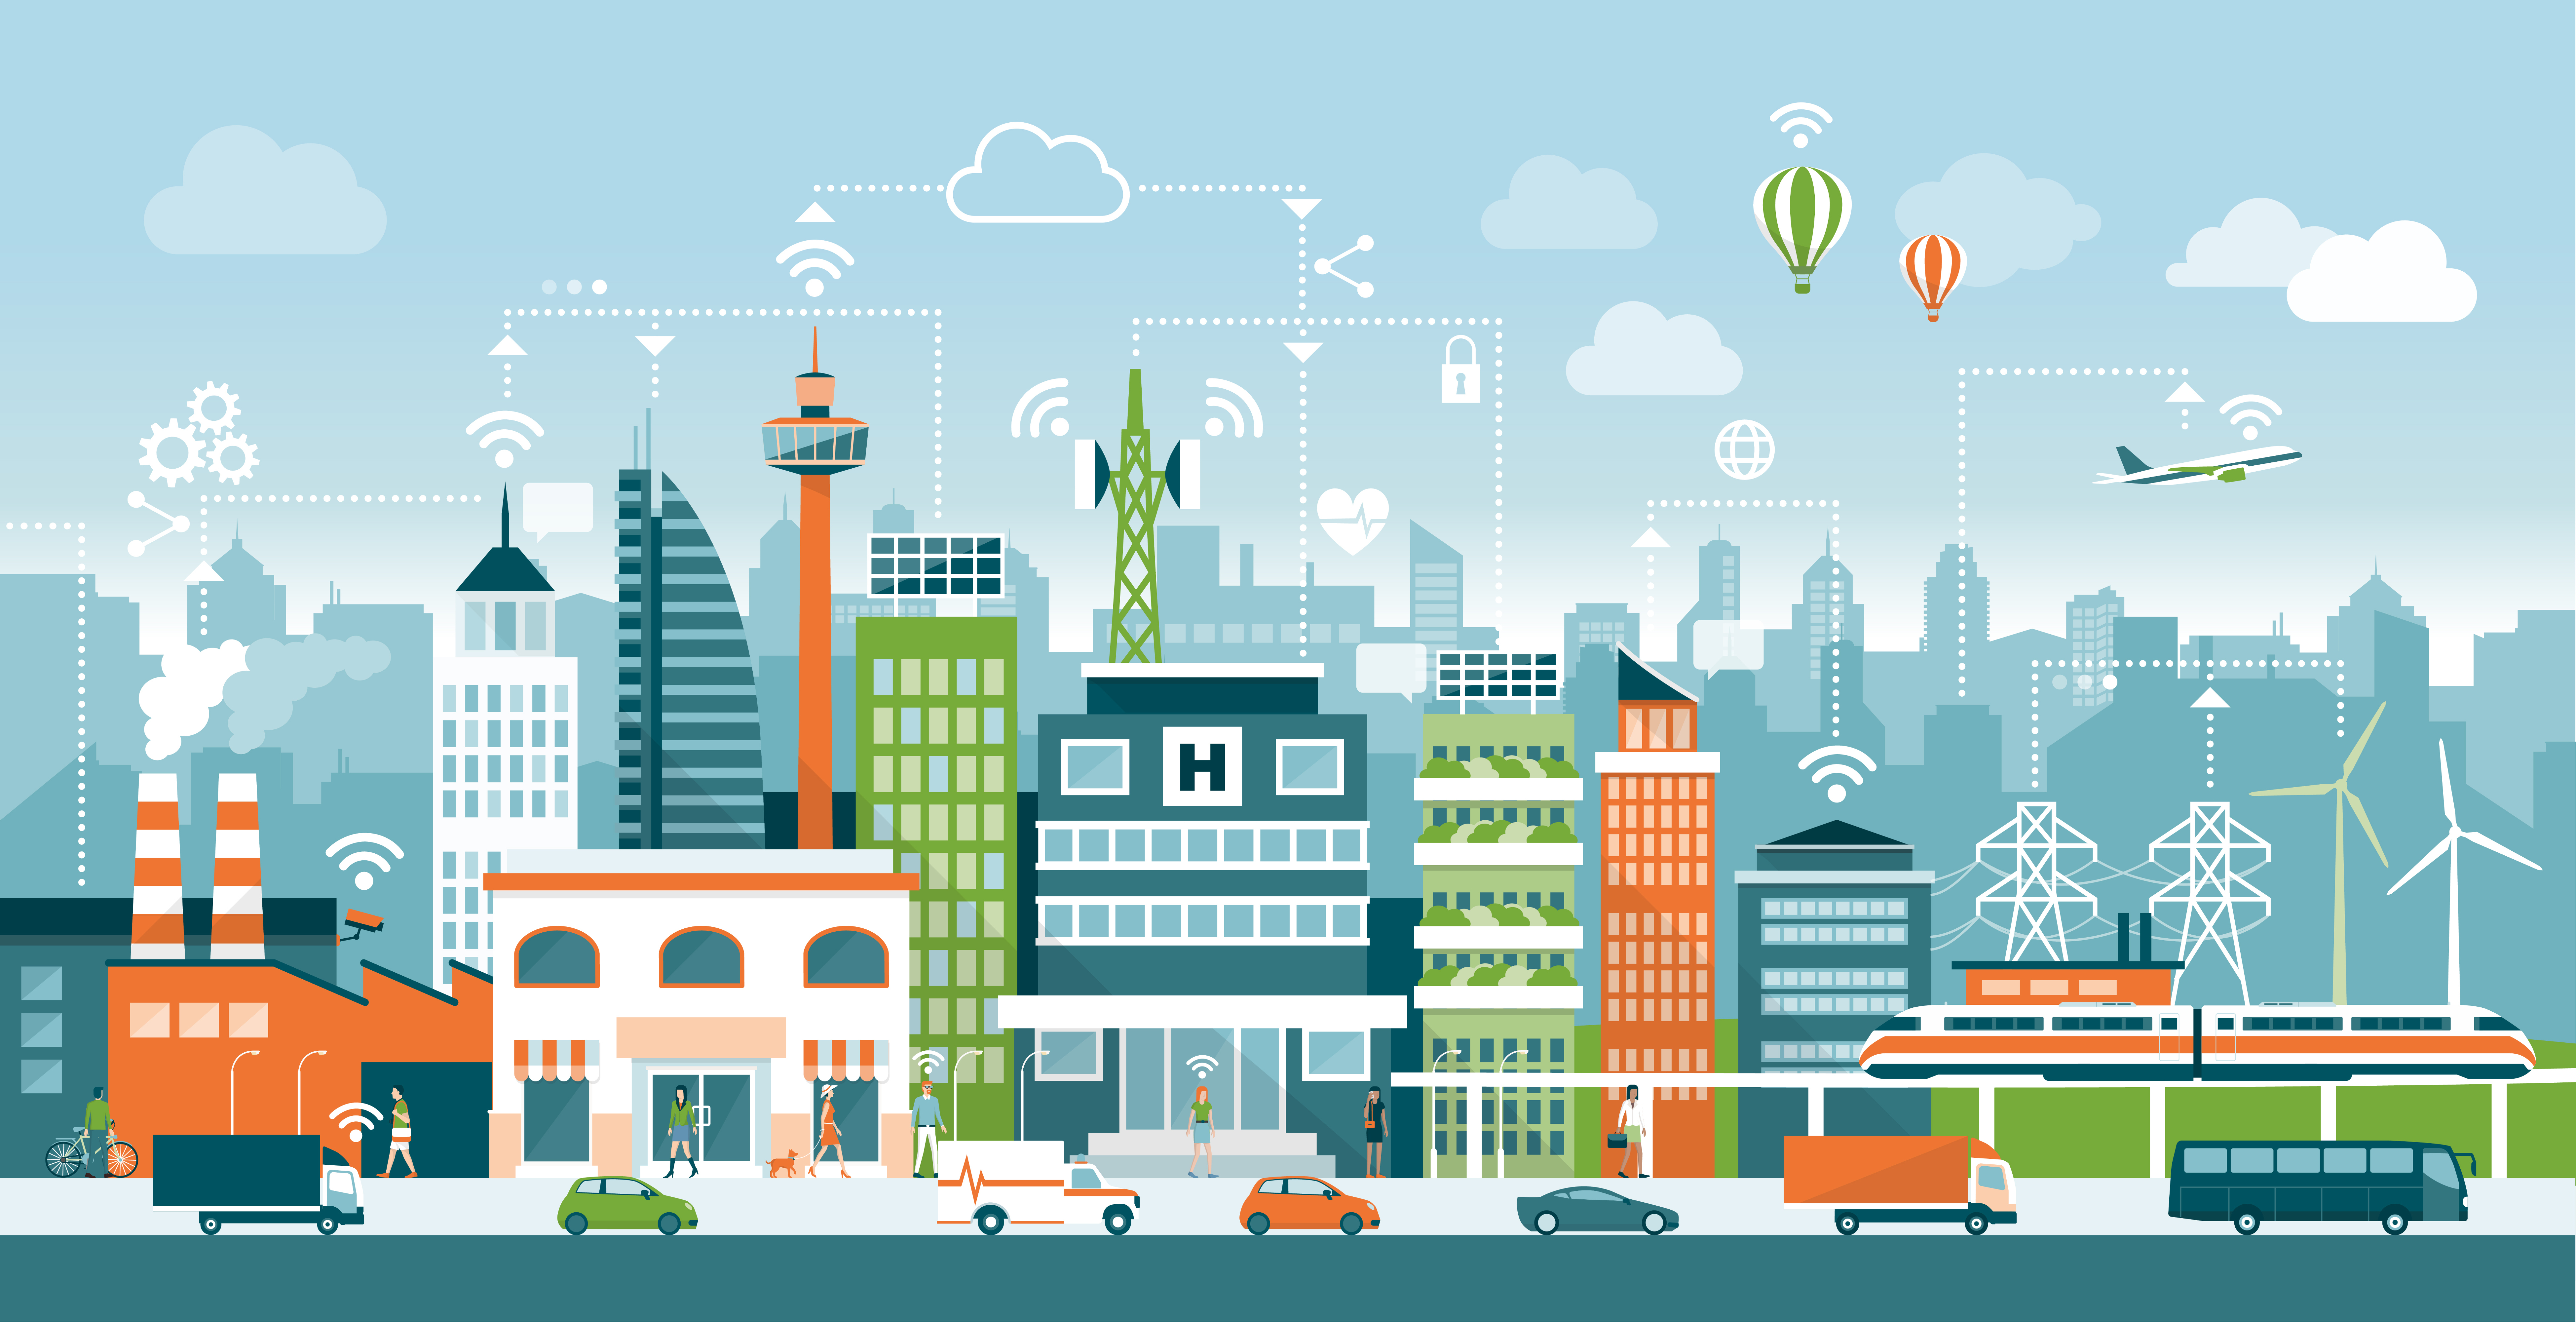 An idiot's guide to futuristic smart cities under development